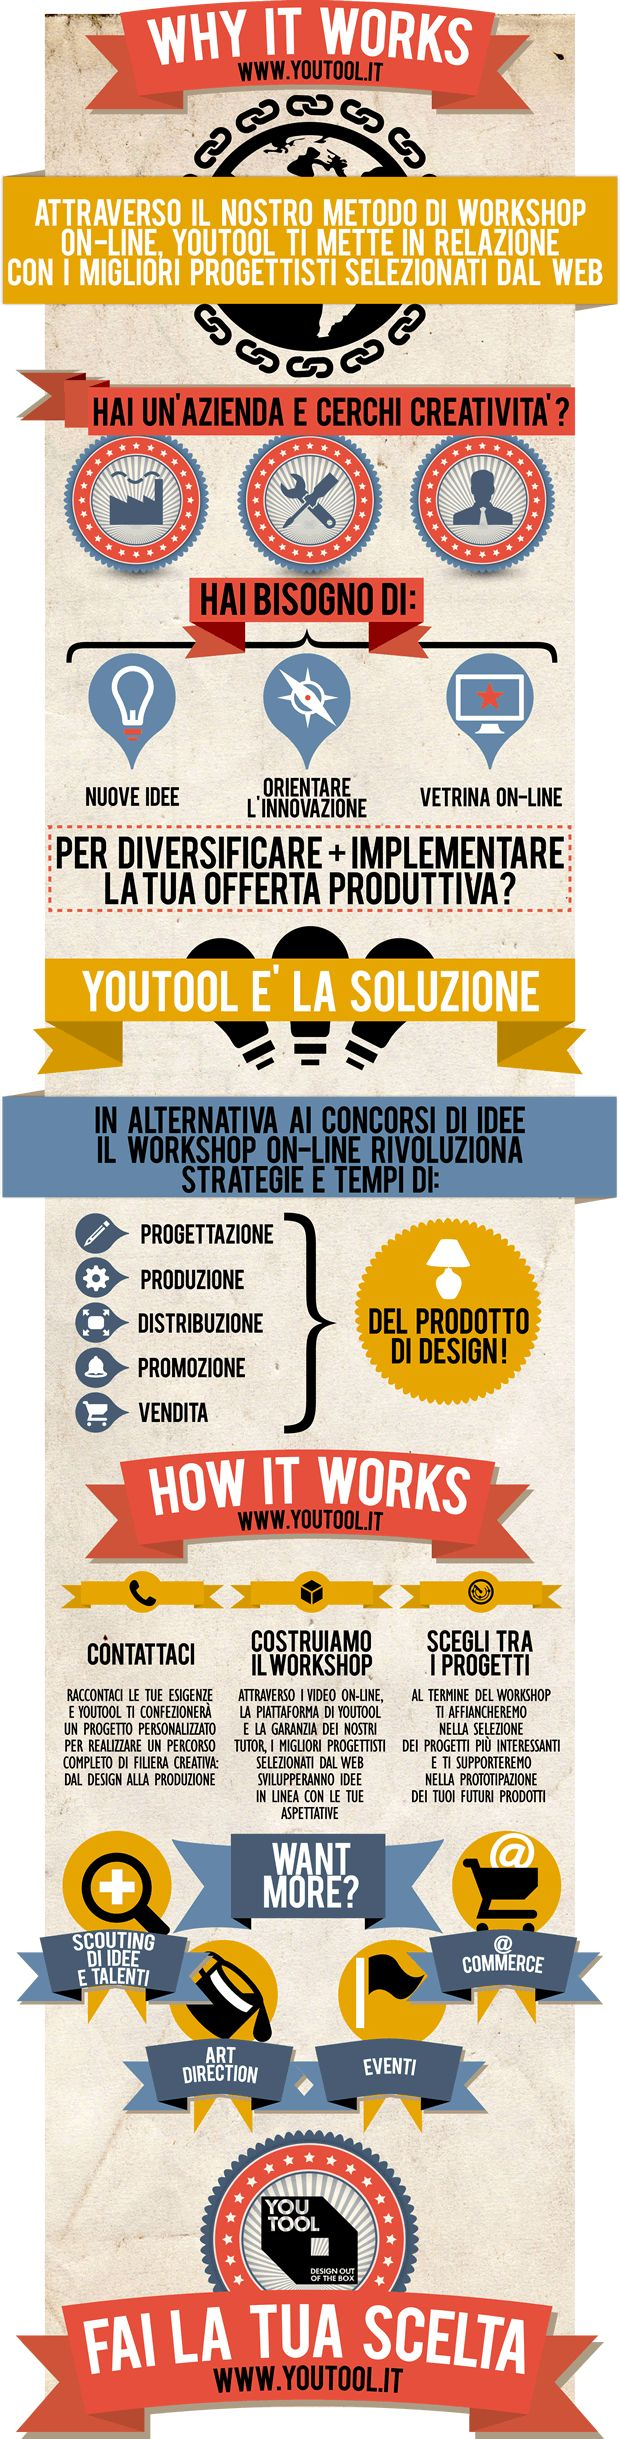 #YOUTOOL per le #aziende #factory #infographic